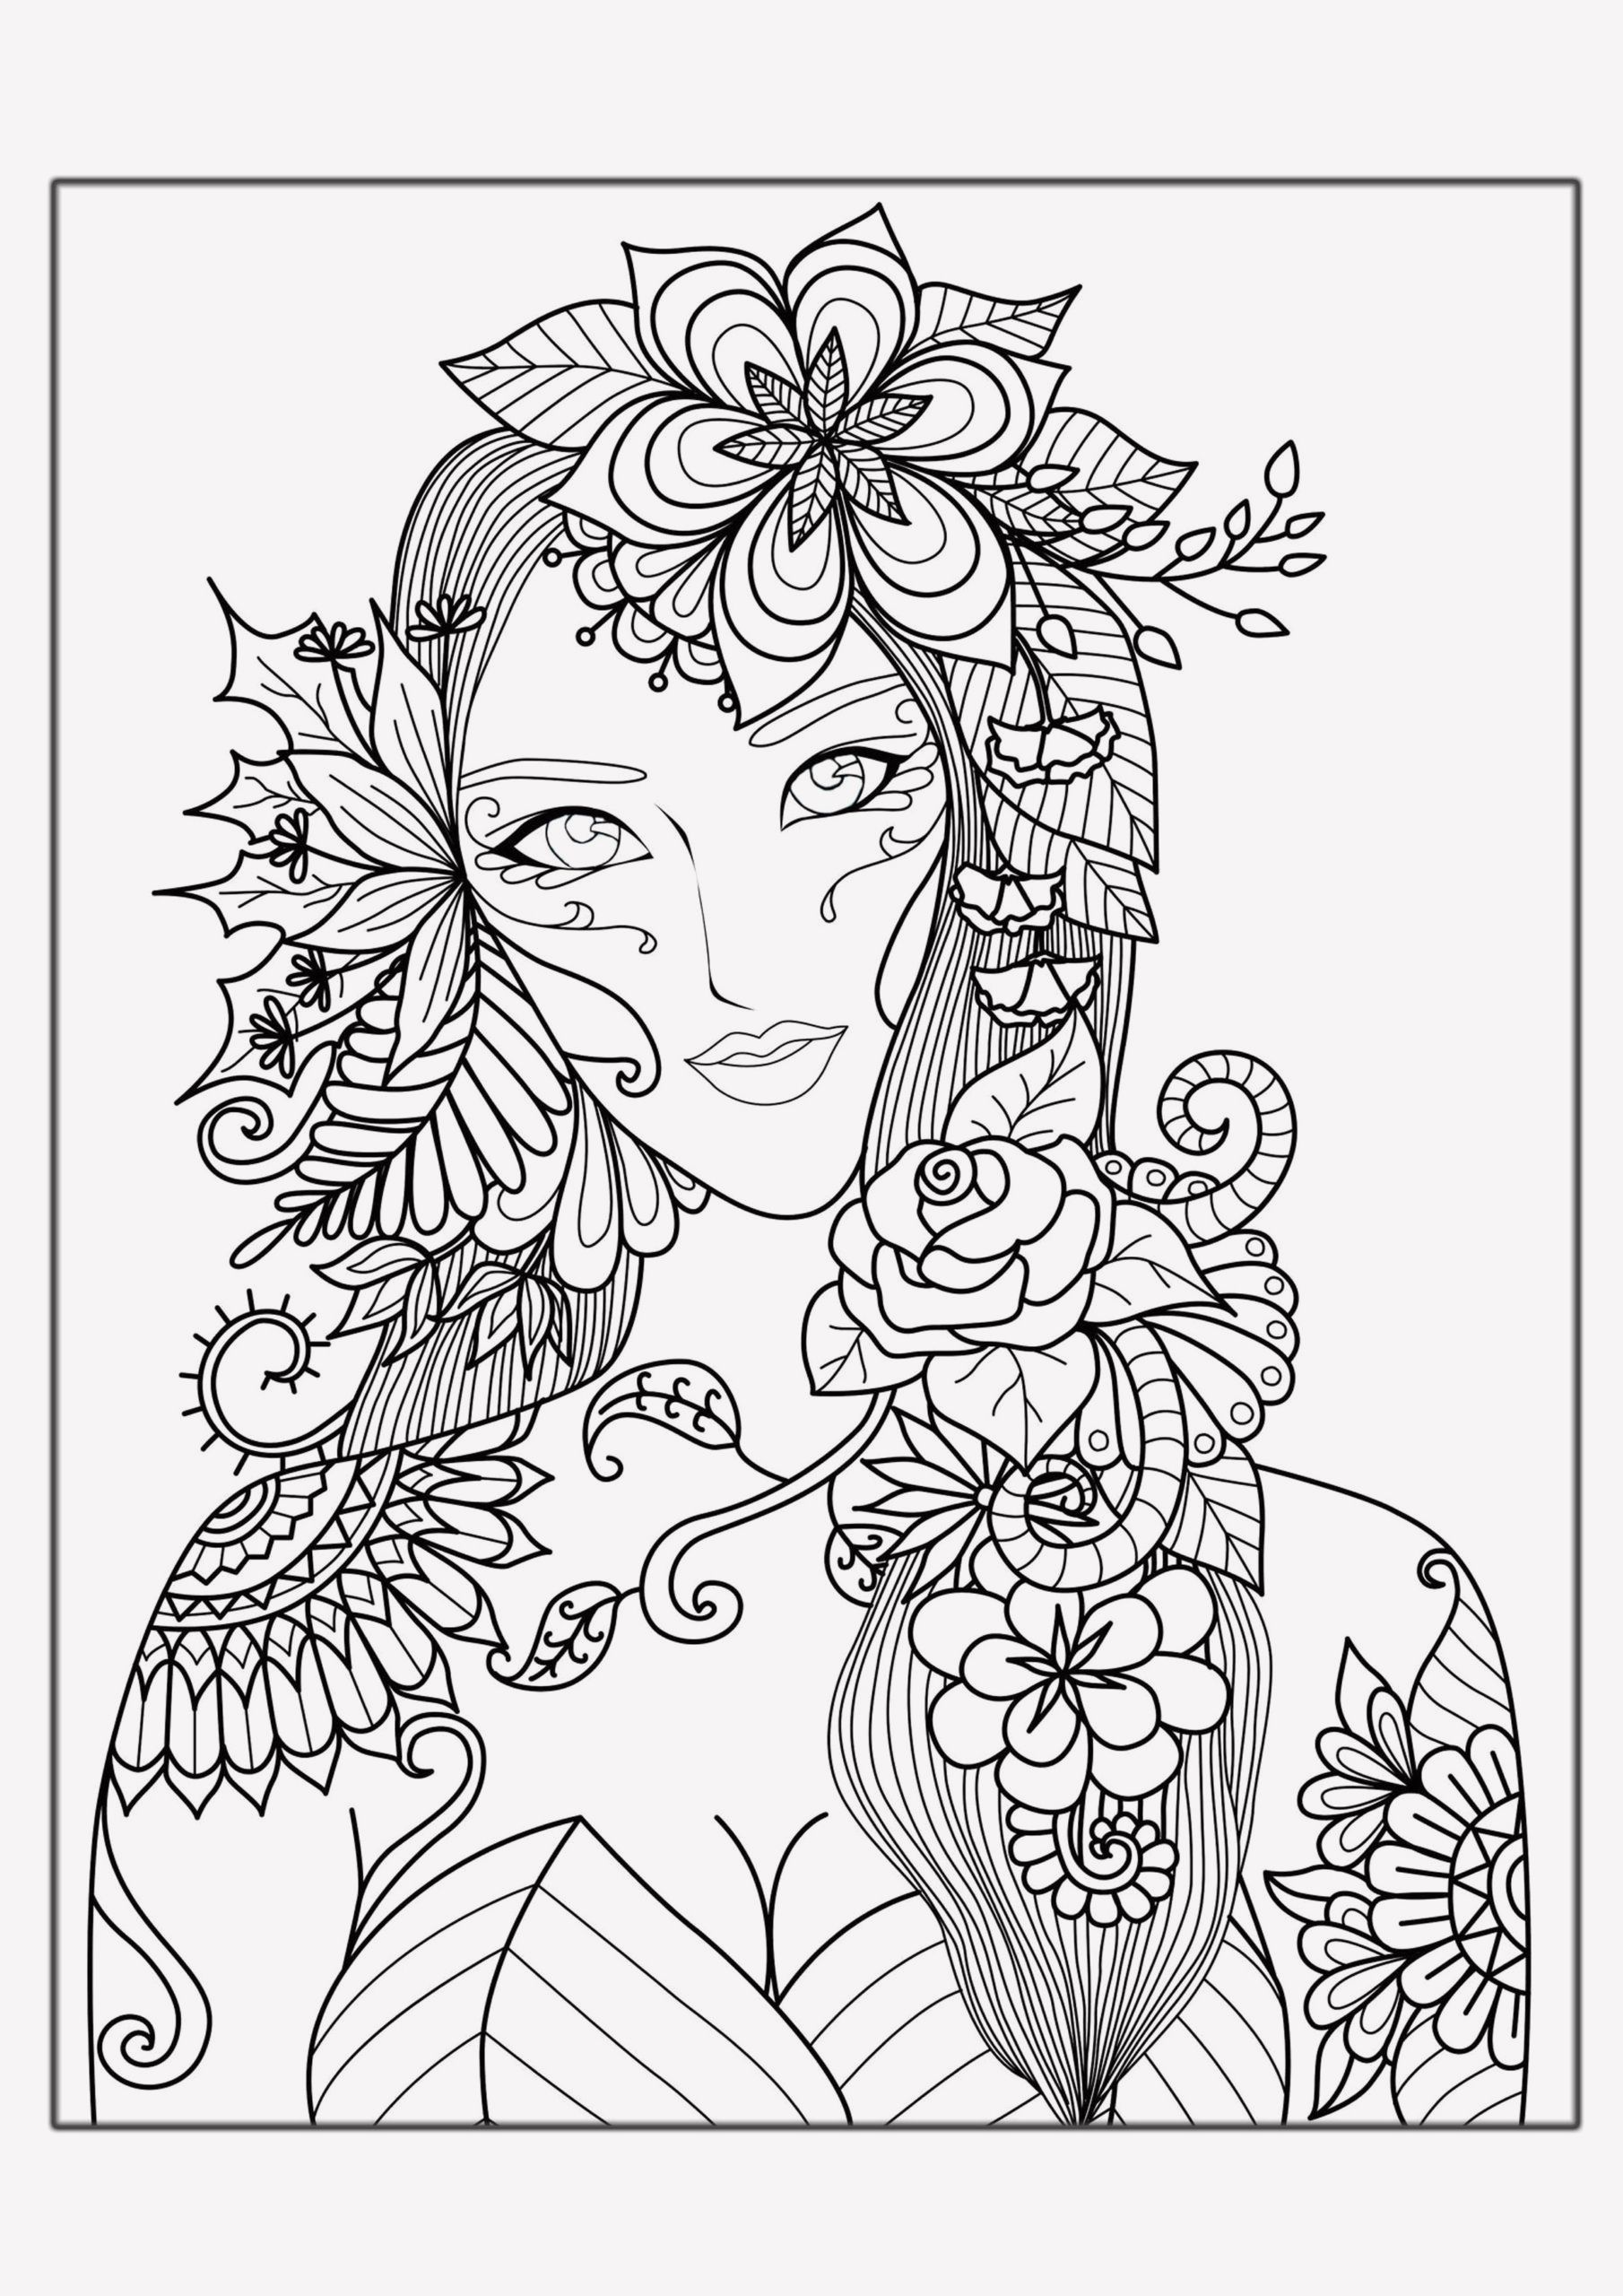 12 Free Printable Coloring Pages For Adults Thanksgiving Detailed Coloring Pages Fall Coloring Pages Abstract Coloring Pages [ 2560 x 1810 Pixel ]